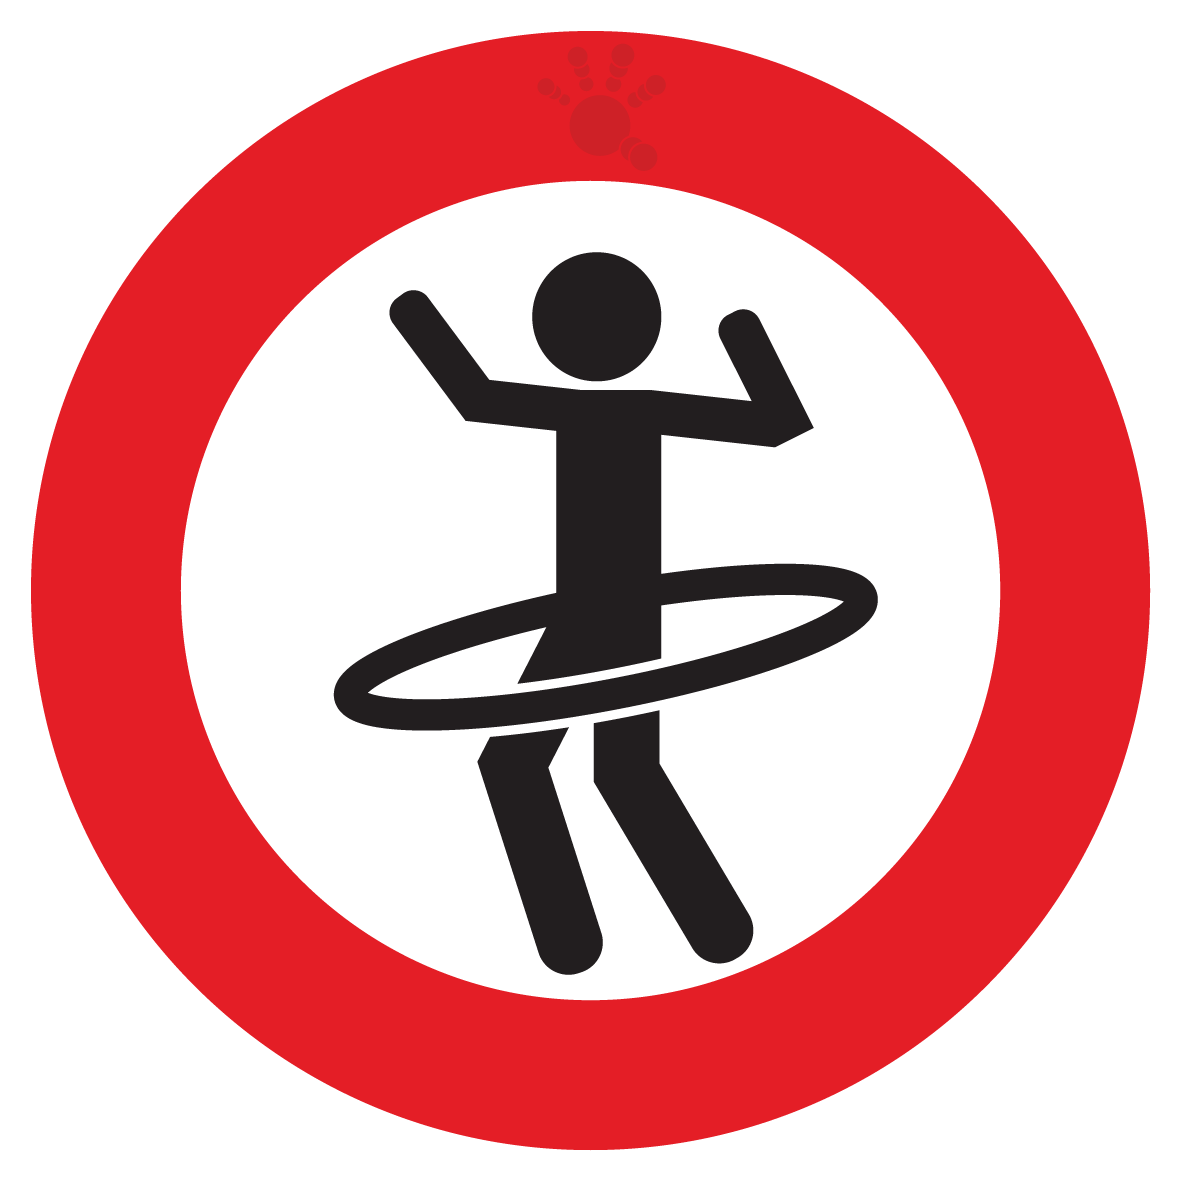 No hullahooping allowed